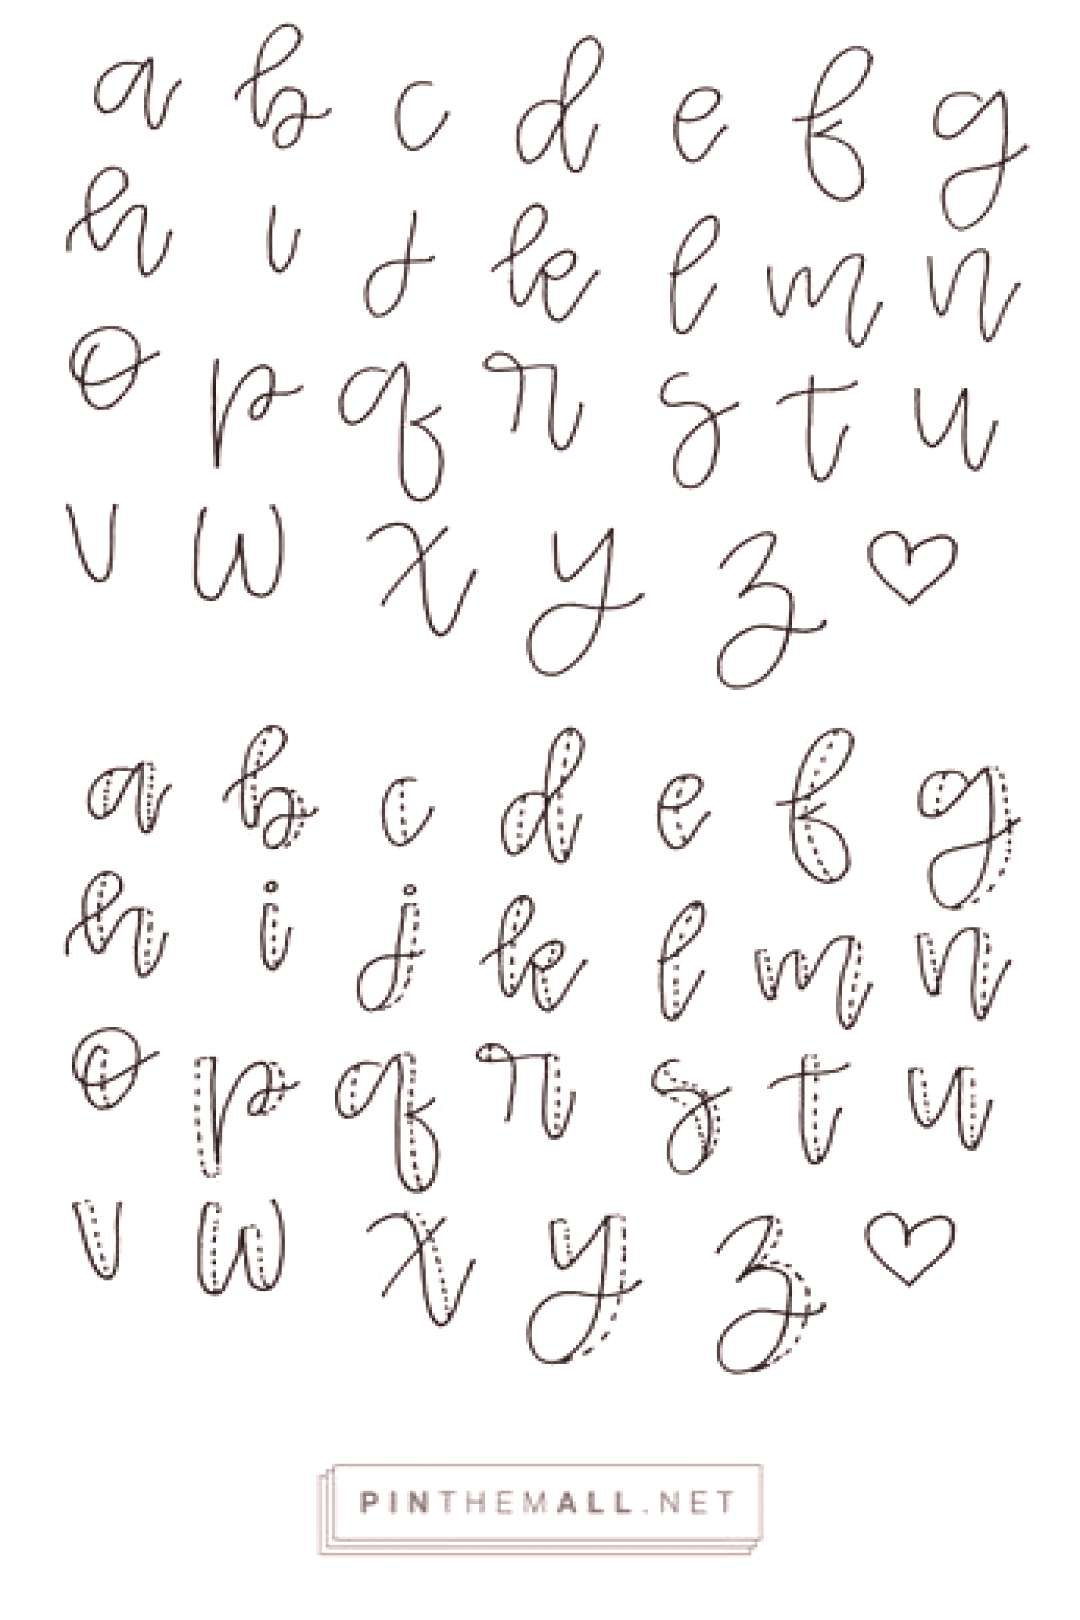 1. exaggerated cursive 2. thicken the downstrokes 3. color it in ☺️ 1. exaggerated cursive 2. t